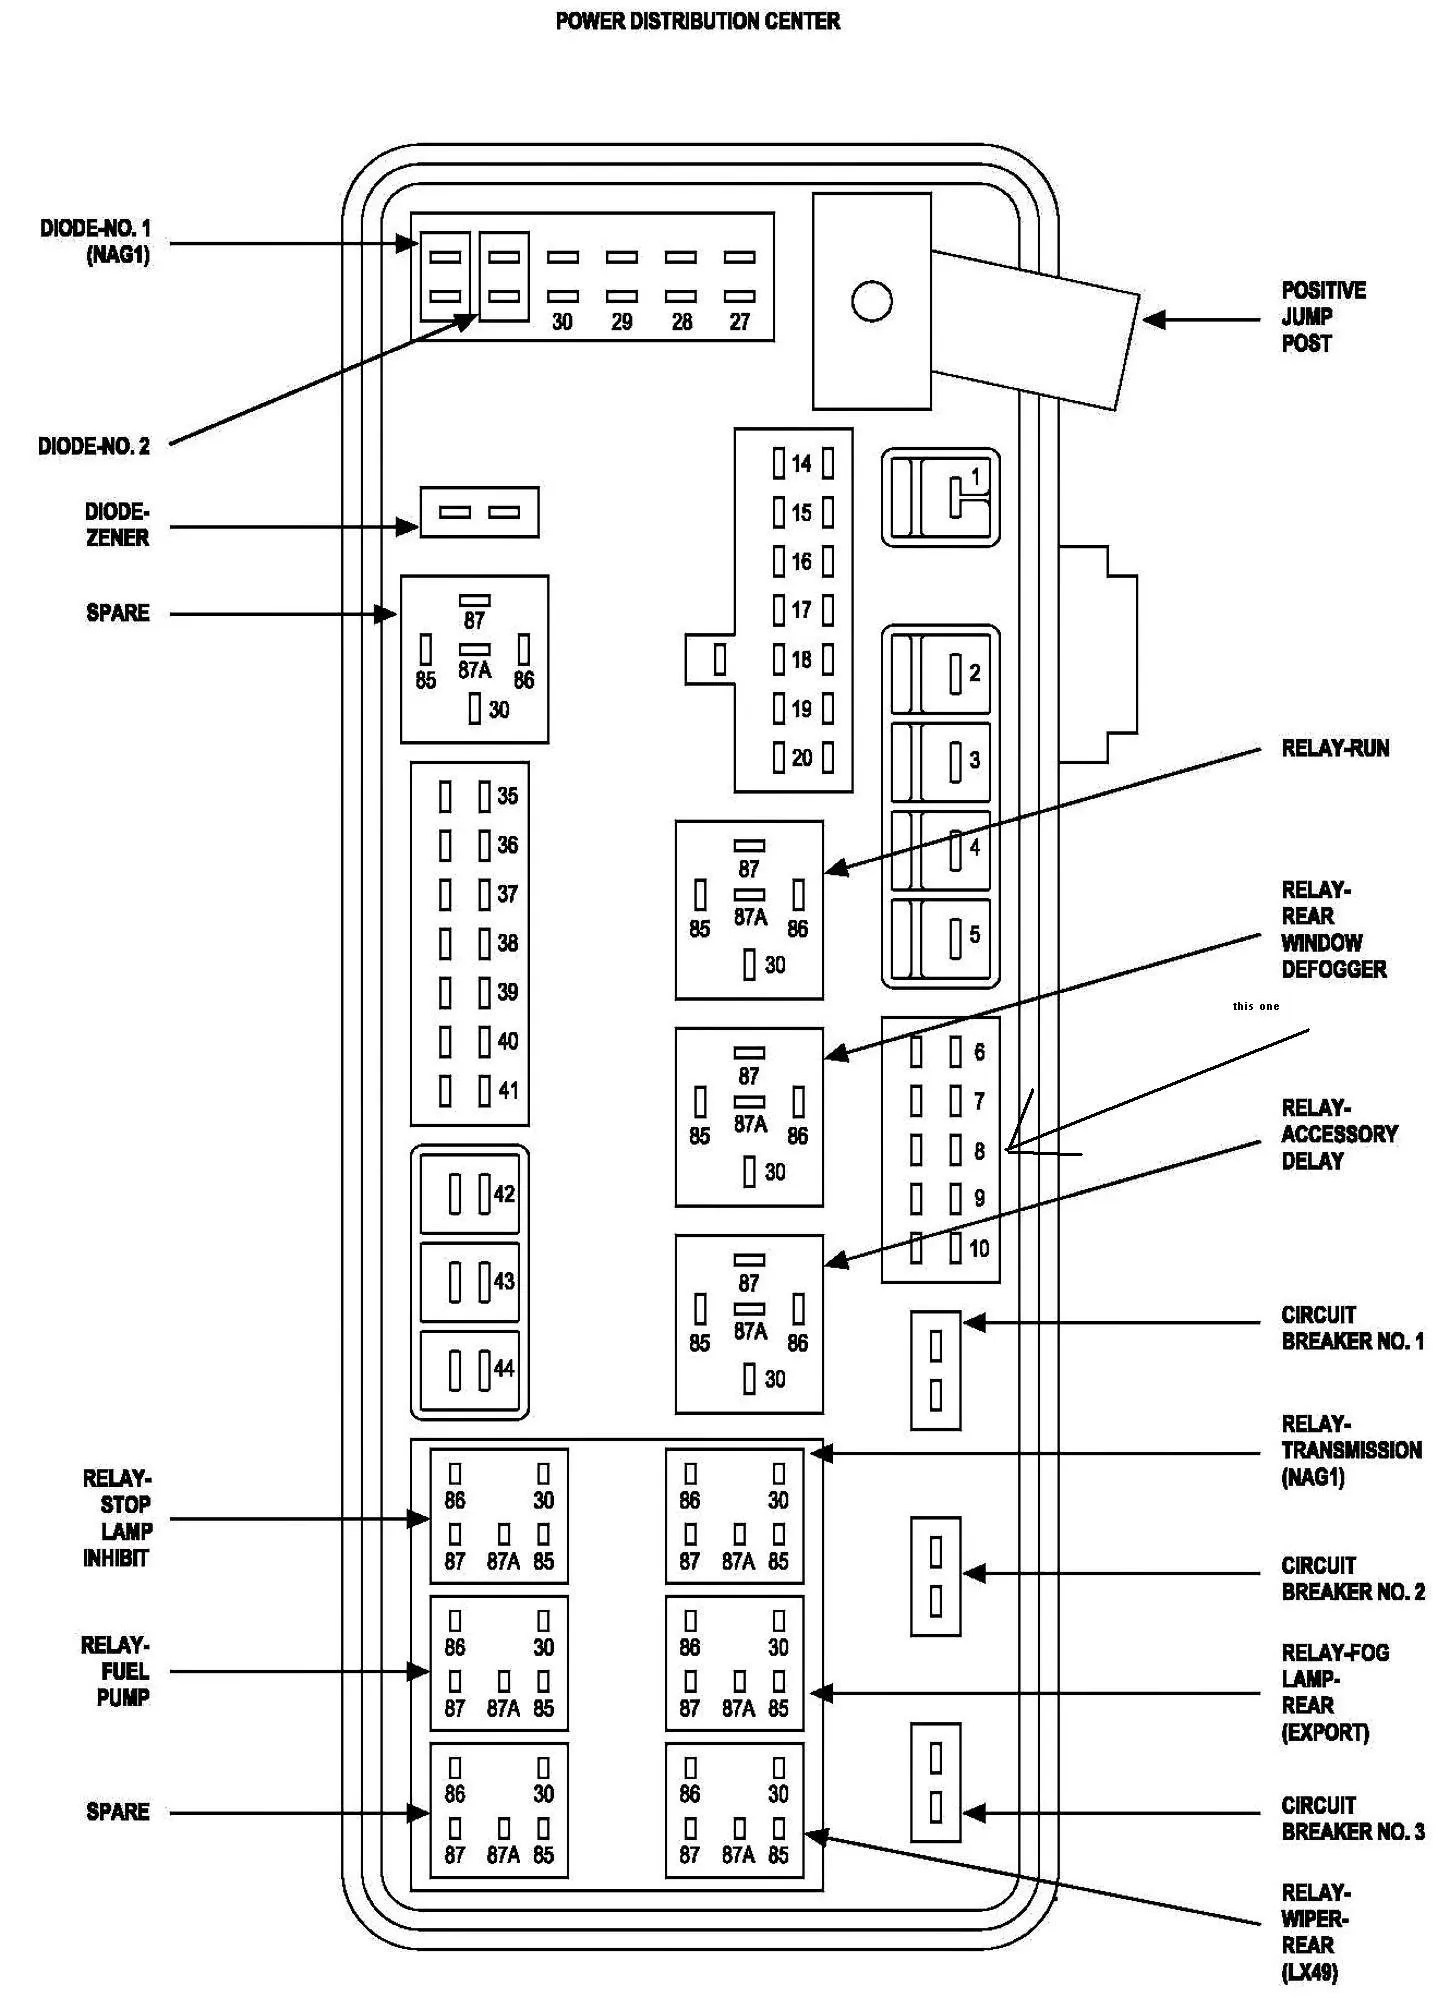 hight resolution of 2008 dodge sprinter fuse box diagram wiring diagram hub 2008 dodge sprinter fuse box diagram 2008 dodge sprinter fuse diagram